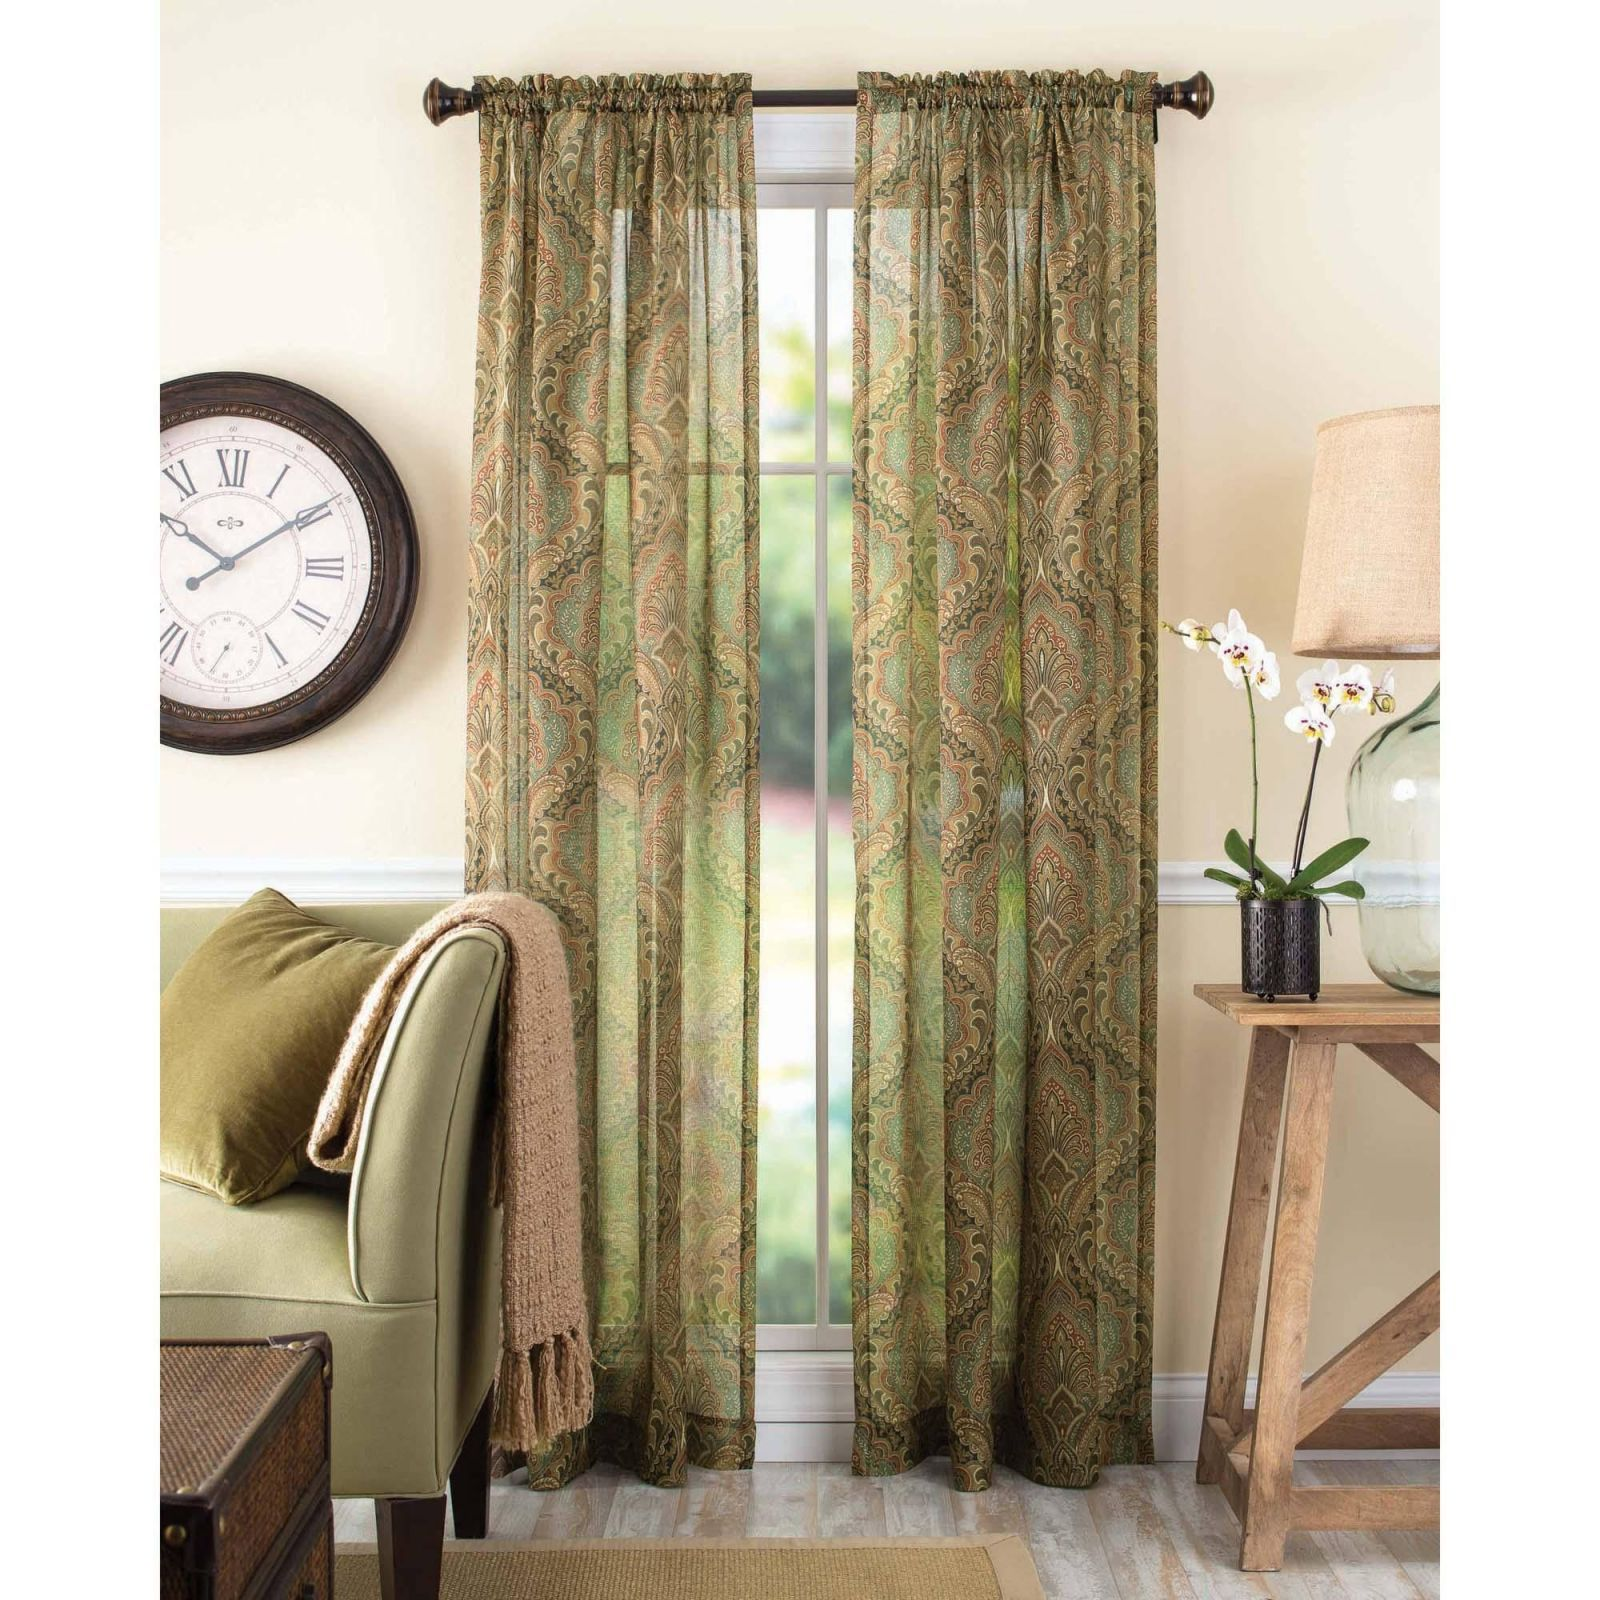 Awesome Criss Cross Curtains Sheer Green sheer curtains